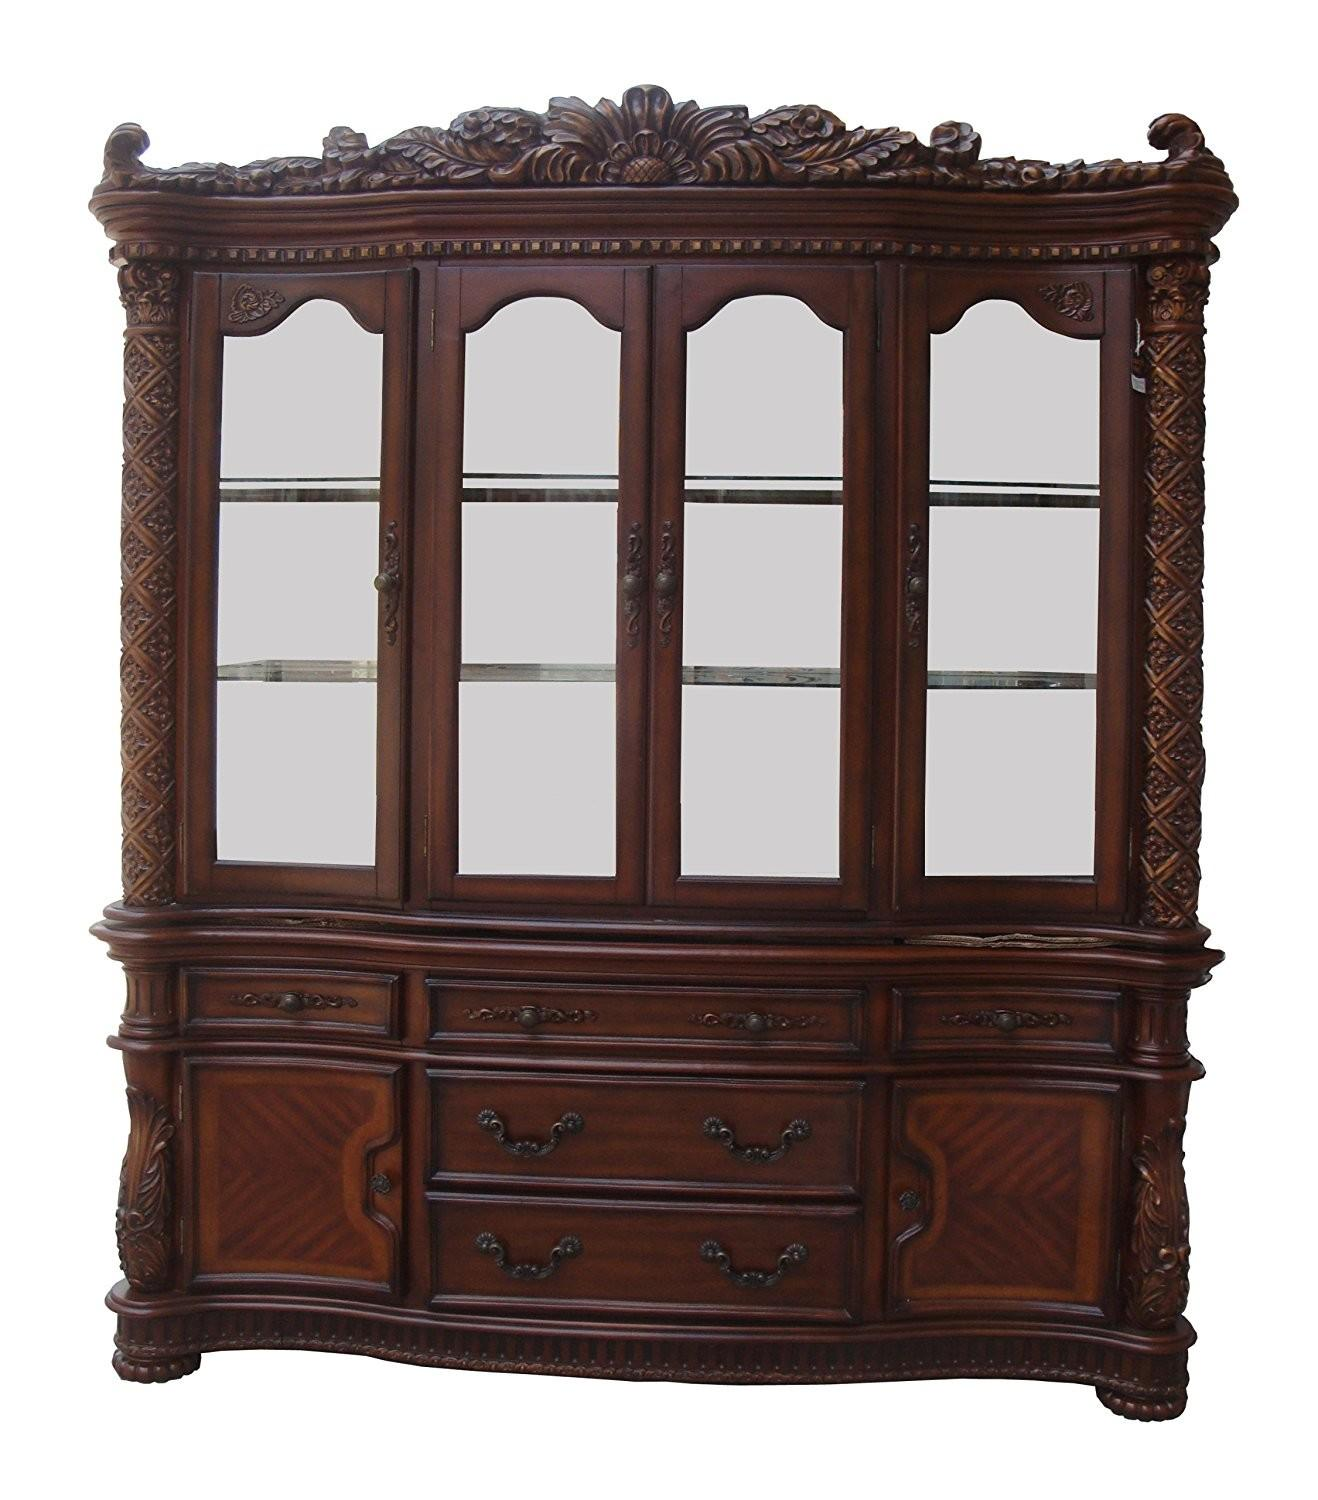 Cabinet Antique Dark Wood Vendome China Cabinets